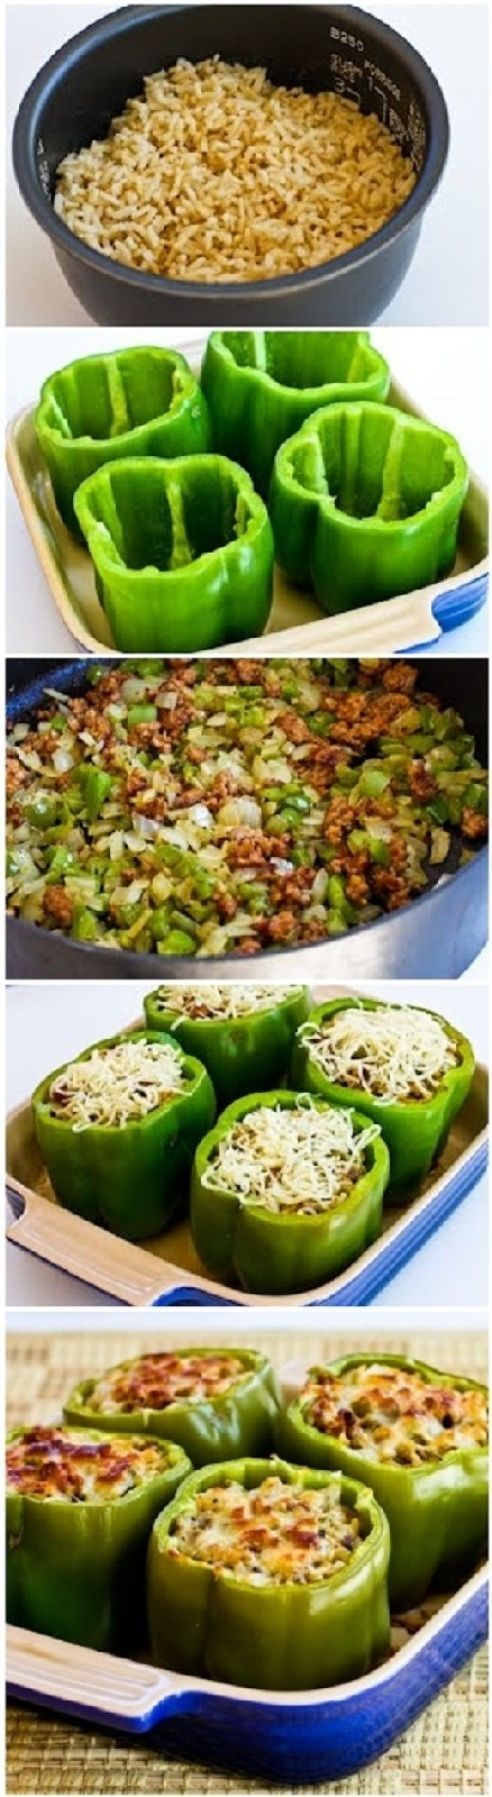 stuffed bell peppers healthy eats without rice and use ground turkey instead